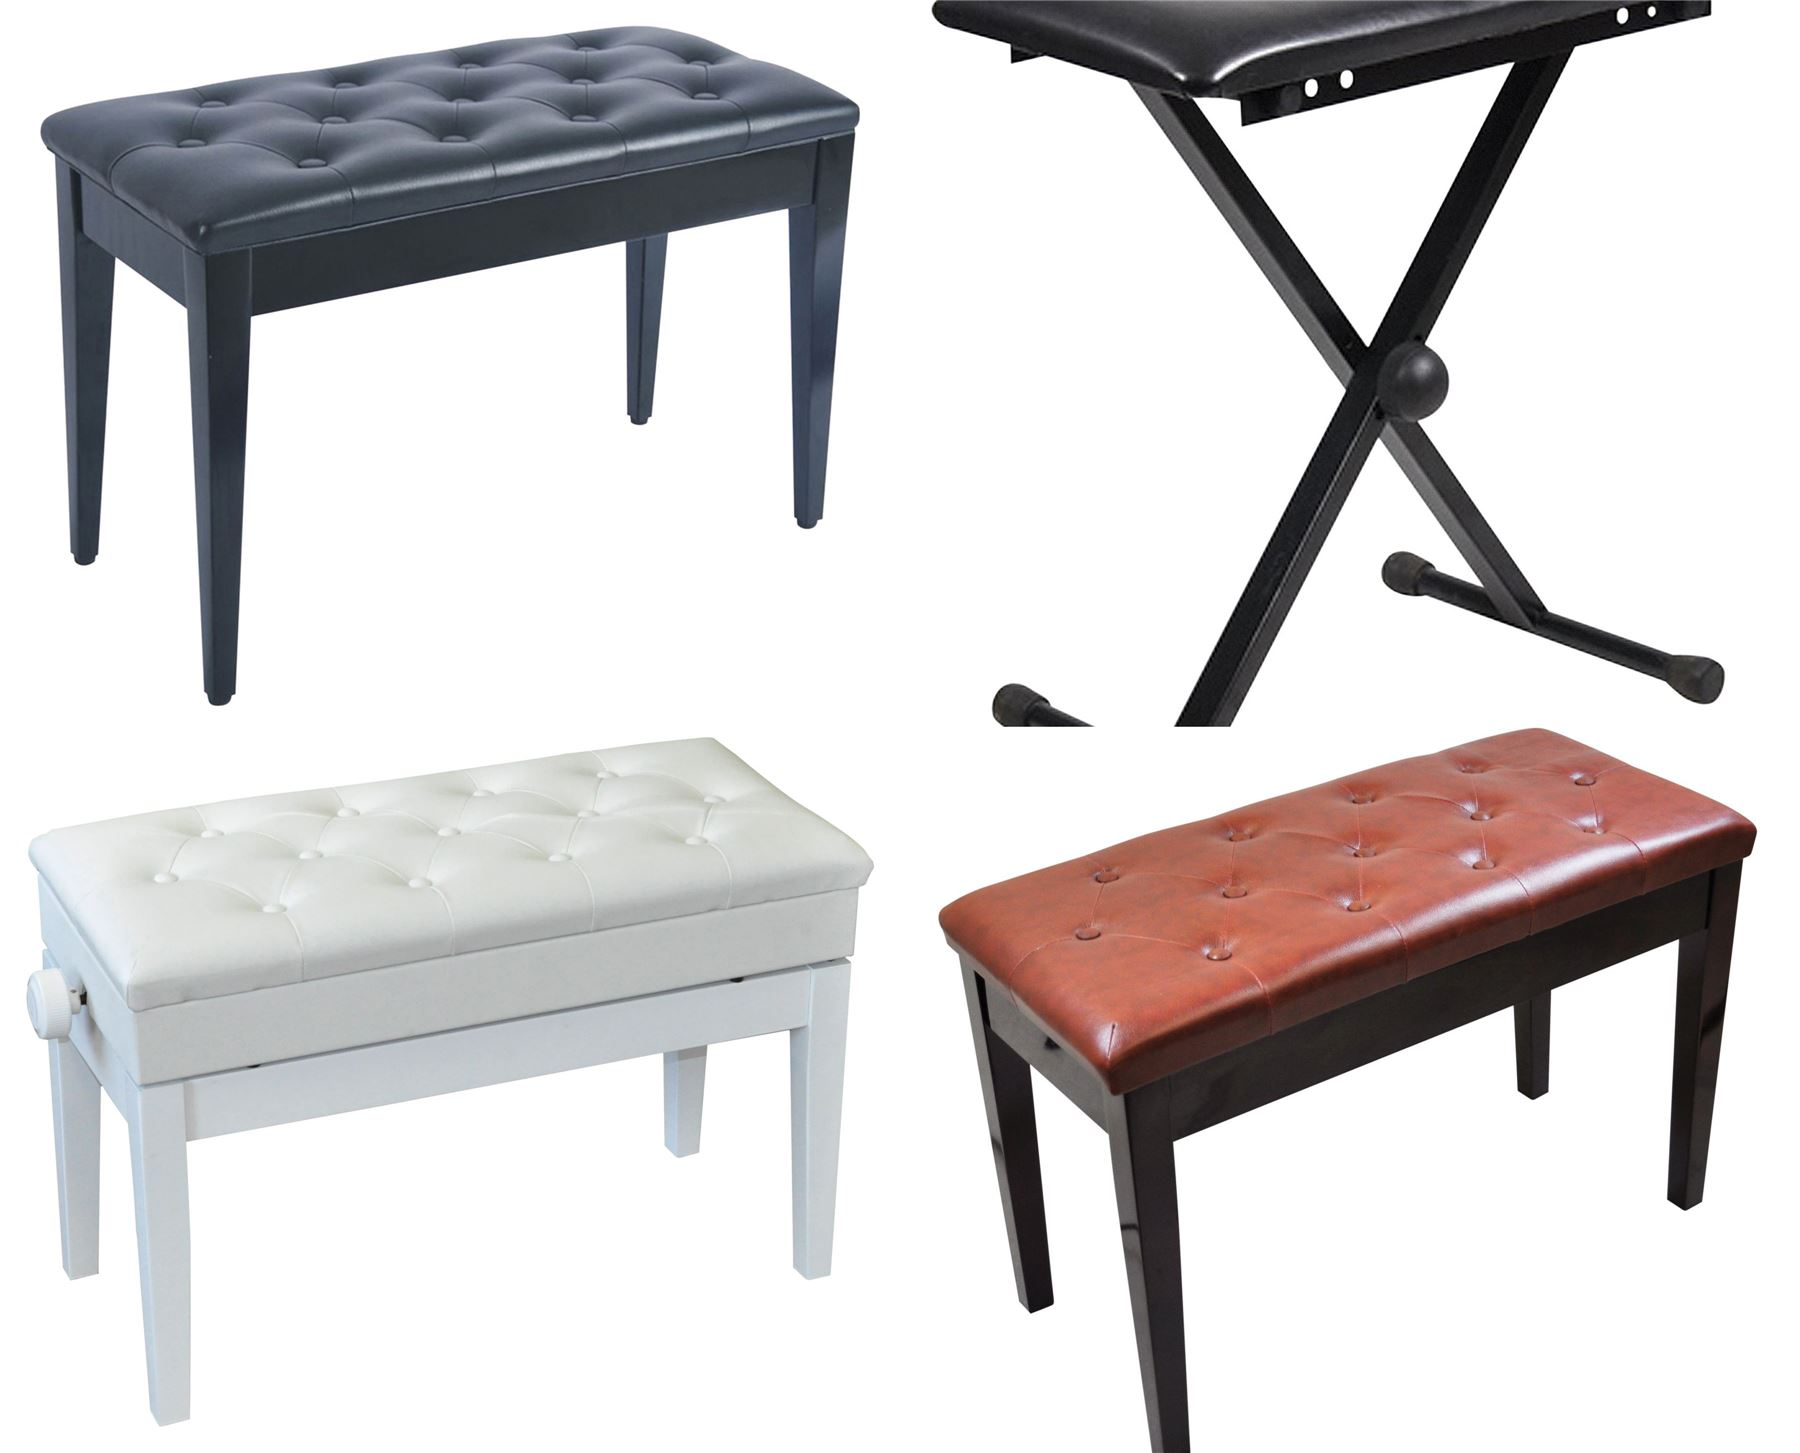 Piano Bench Cushion | Bench Seat Cushions Indoor | Bench Padding